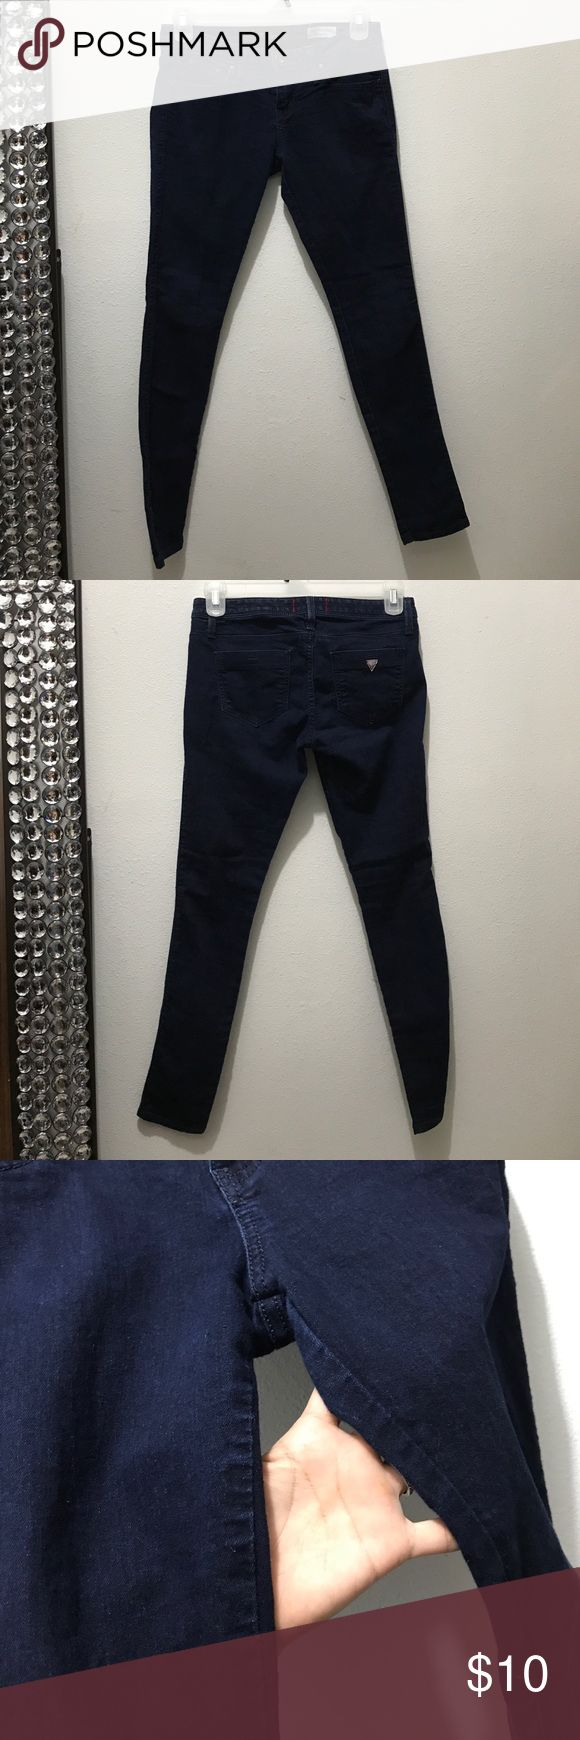 """Guess jeggings Runs small imo. I'm usually a 28 and it was tight on my waist, and a war to get over my thighs. No wear between legs or bottom leg openings. 30"""" inseam Guess Jeans Skinny"""